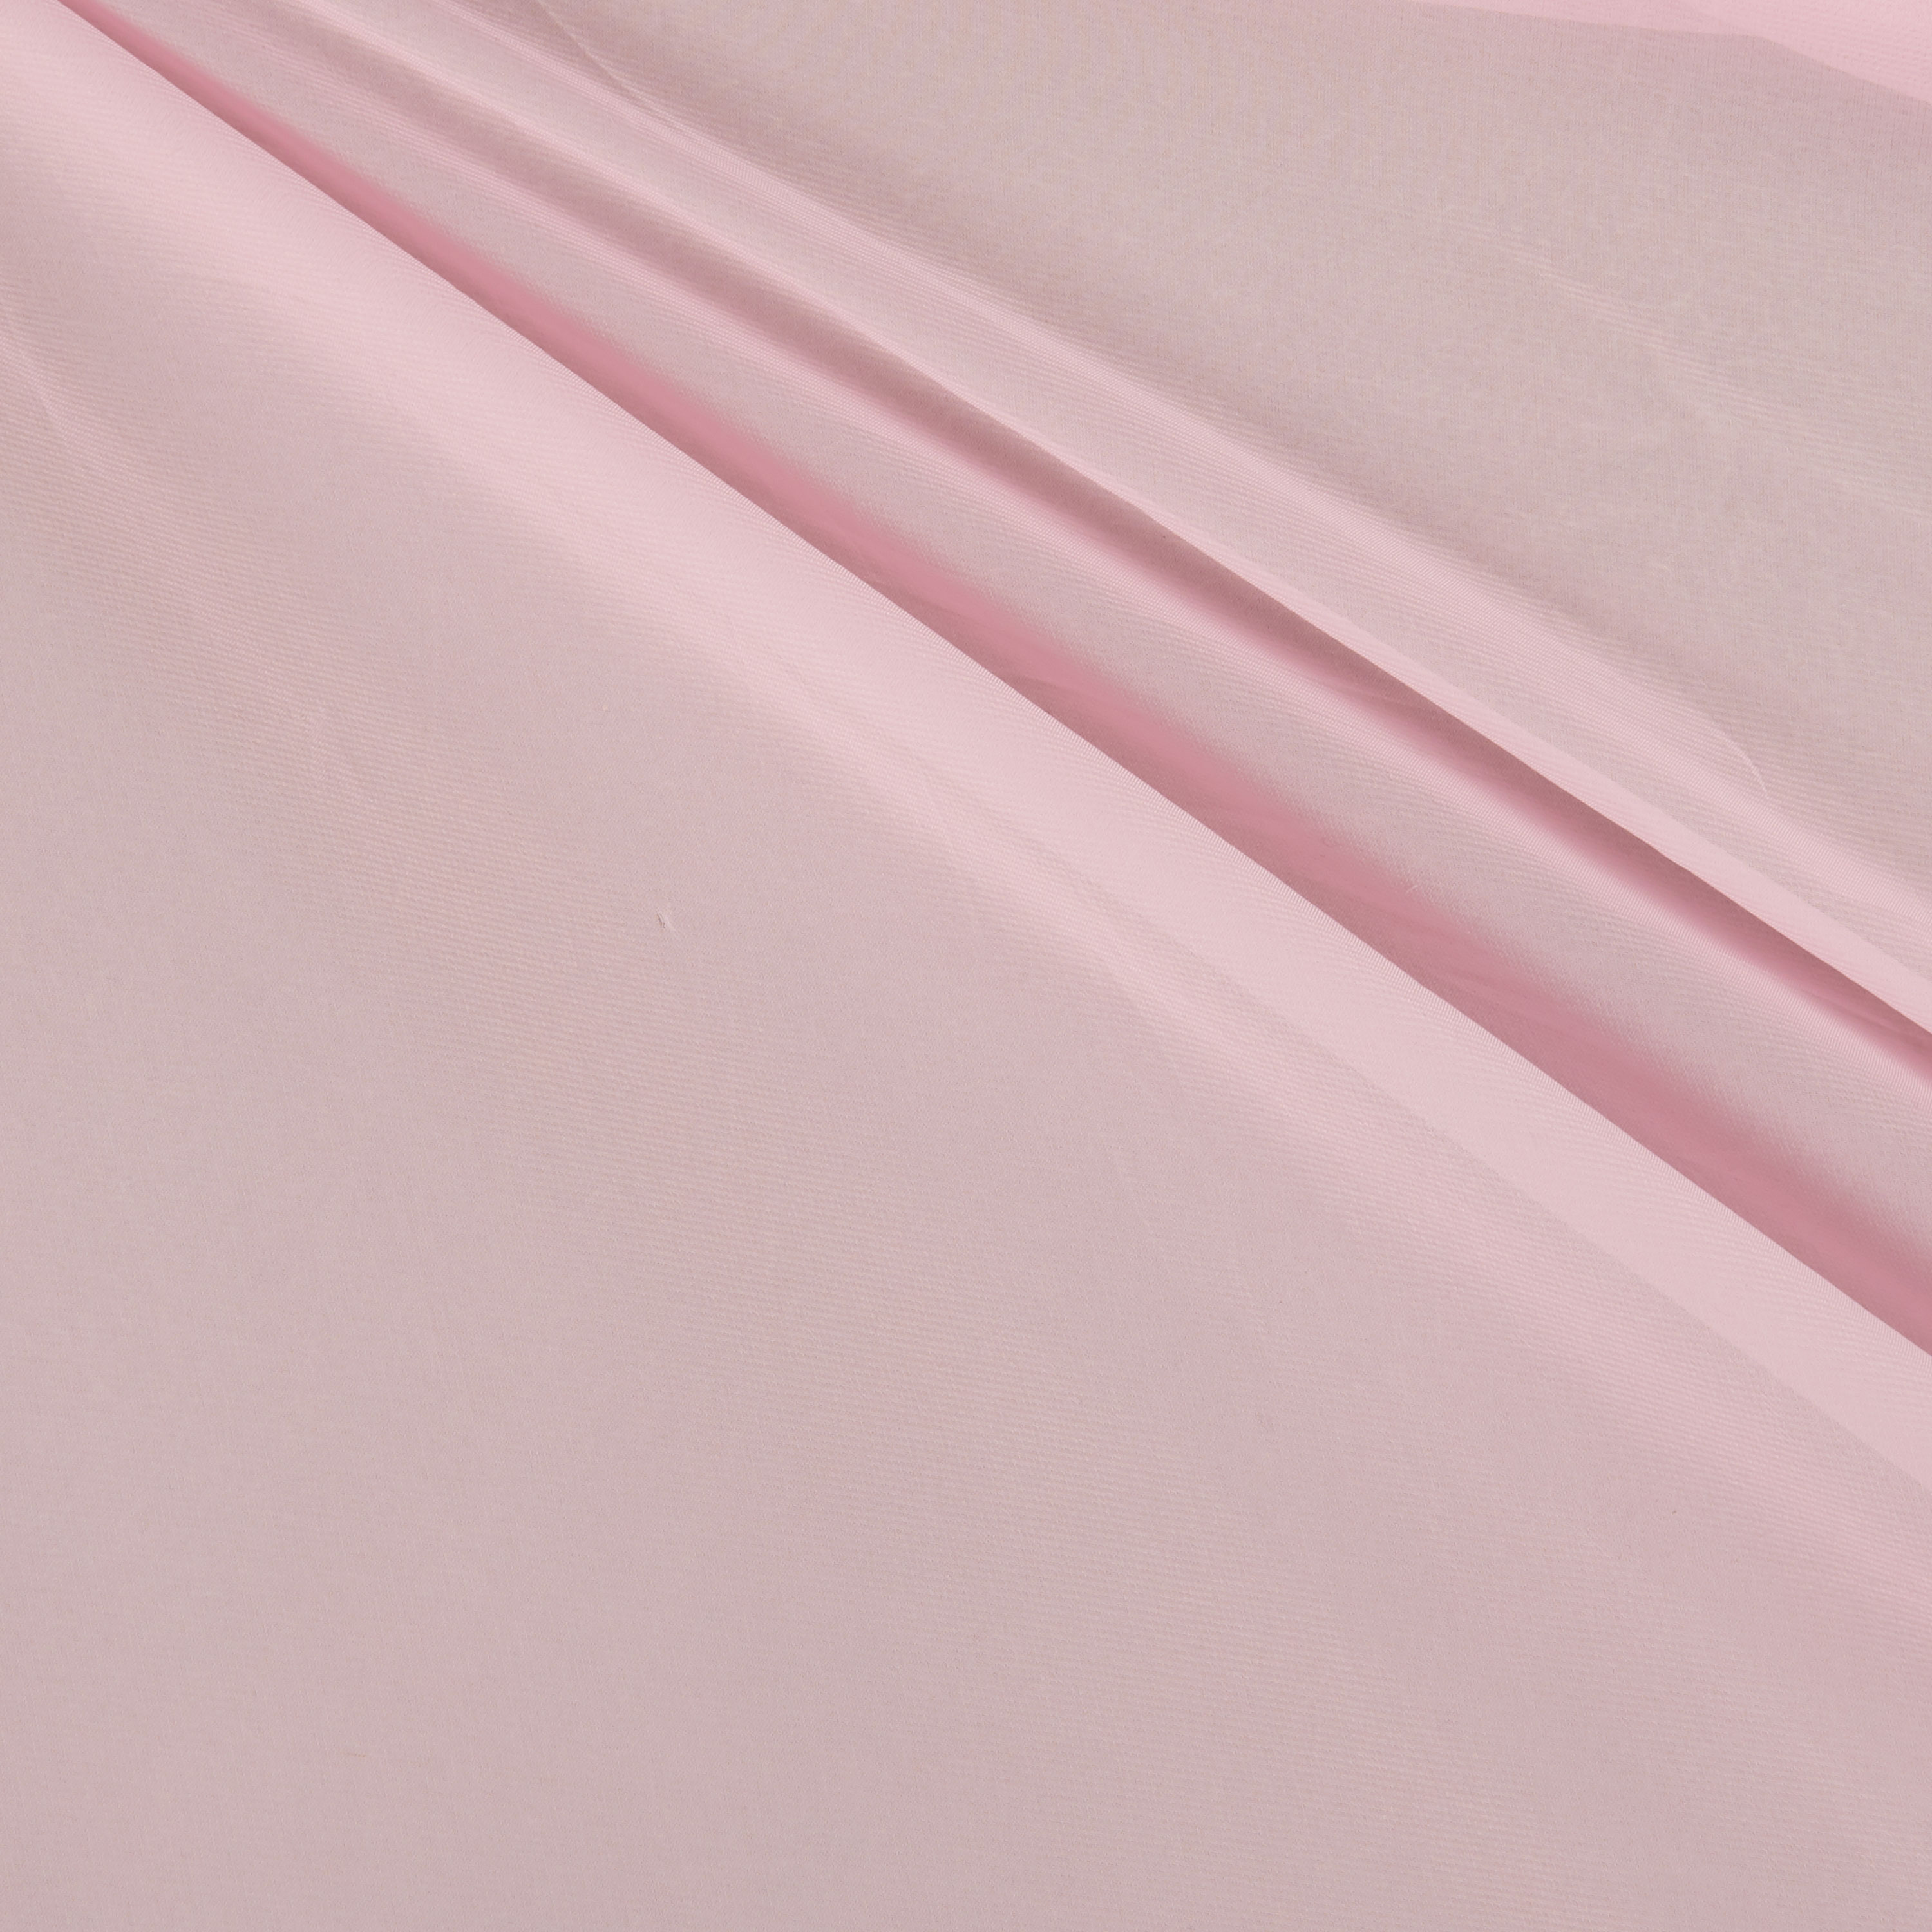 Chiffon Solid Pink Fabric by Ben in USA